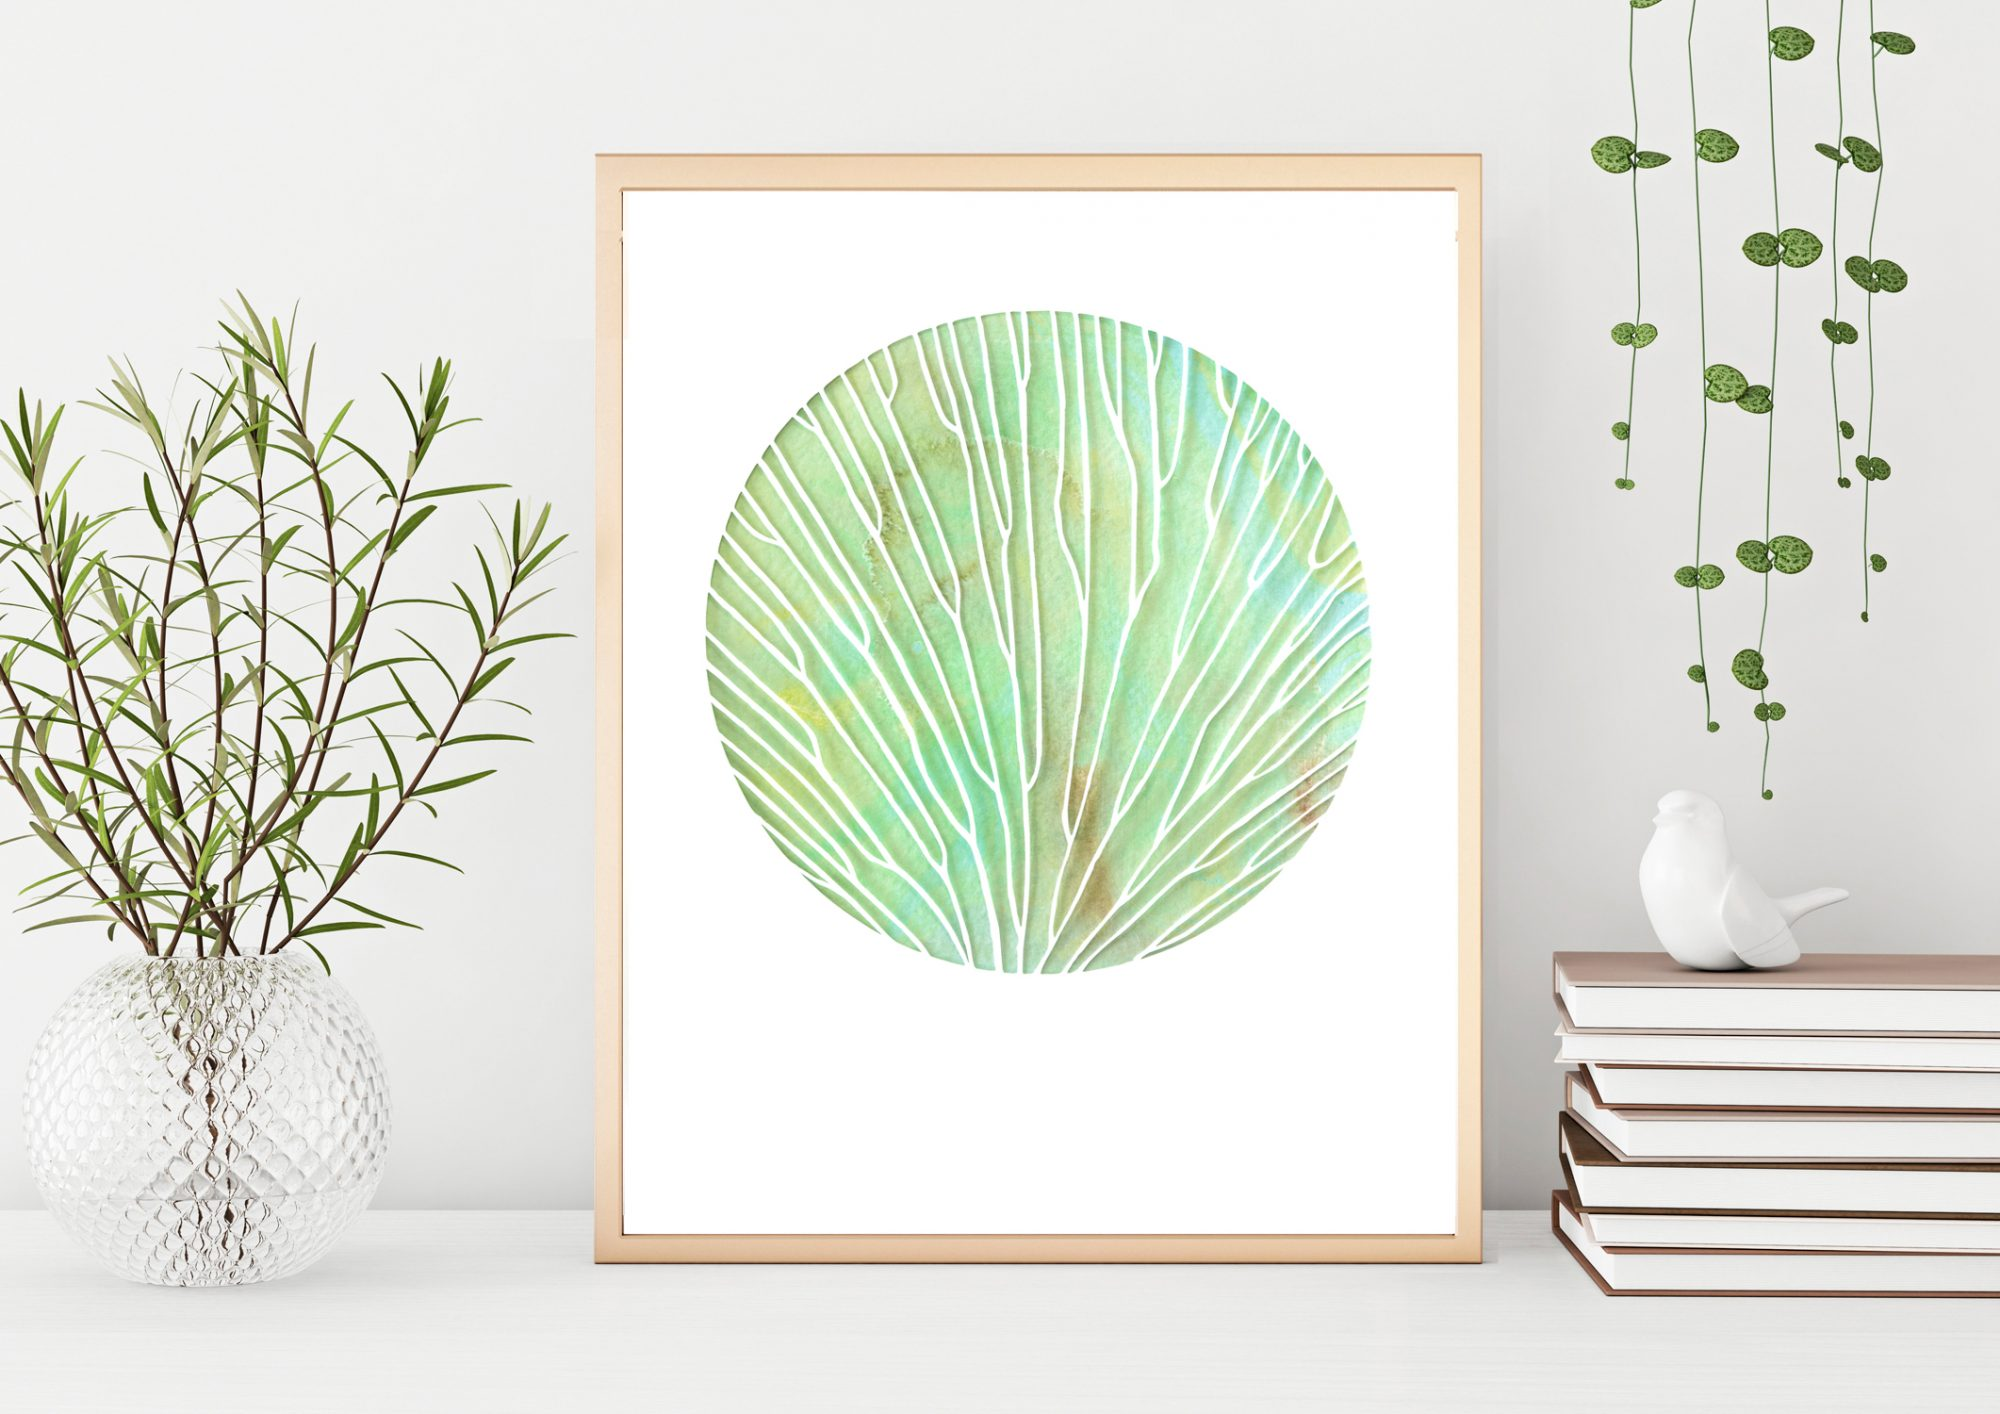 Interior poster mock up with vertical metal frame and plants in